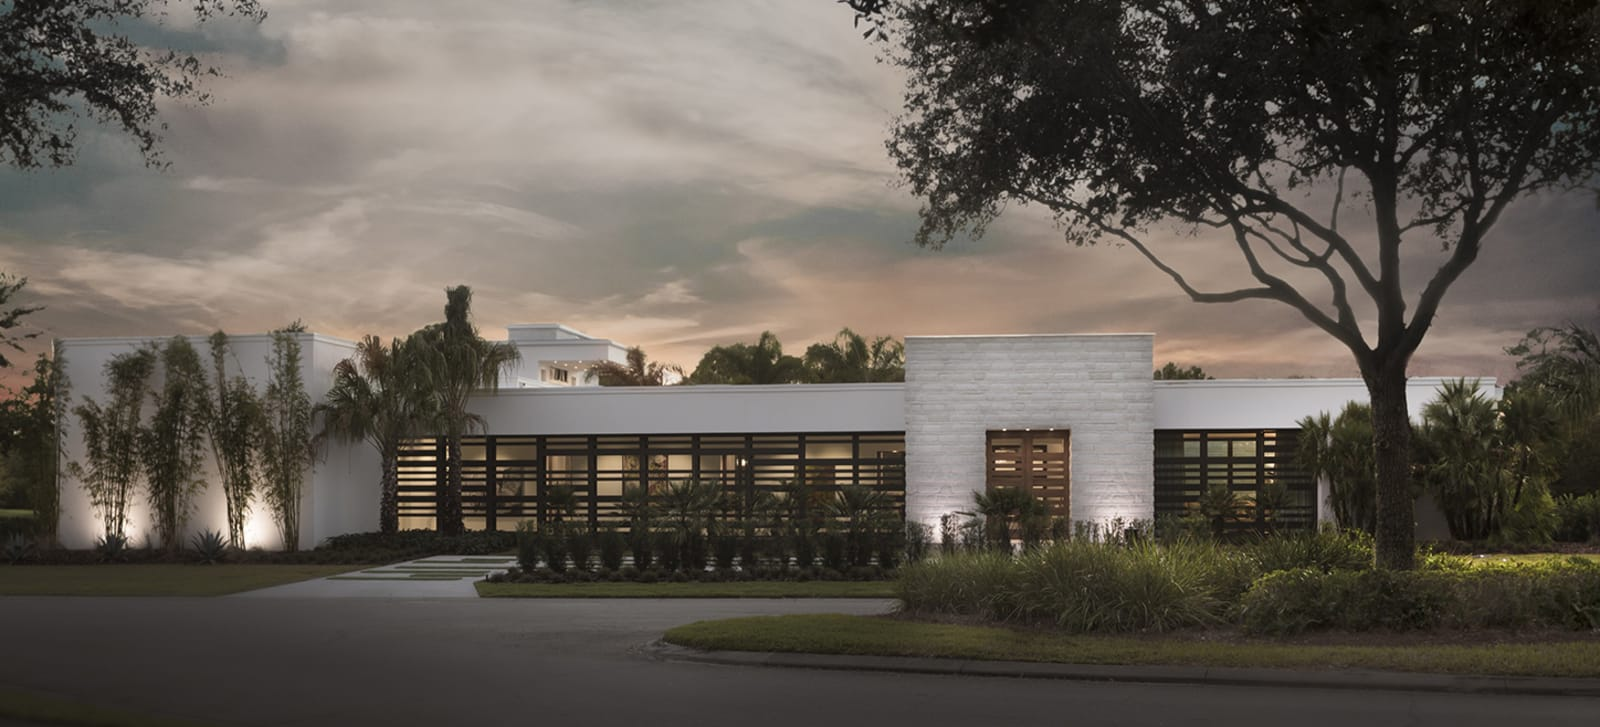 Find Luxury Real Estate in Lake Nona Estates | Premier Realty